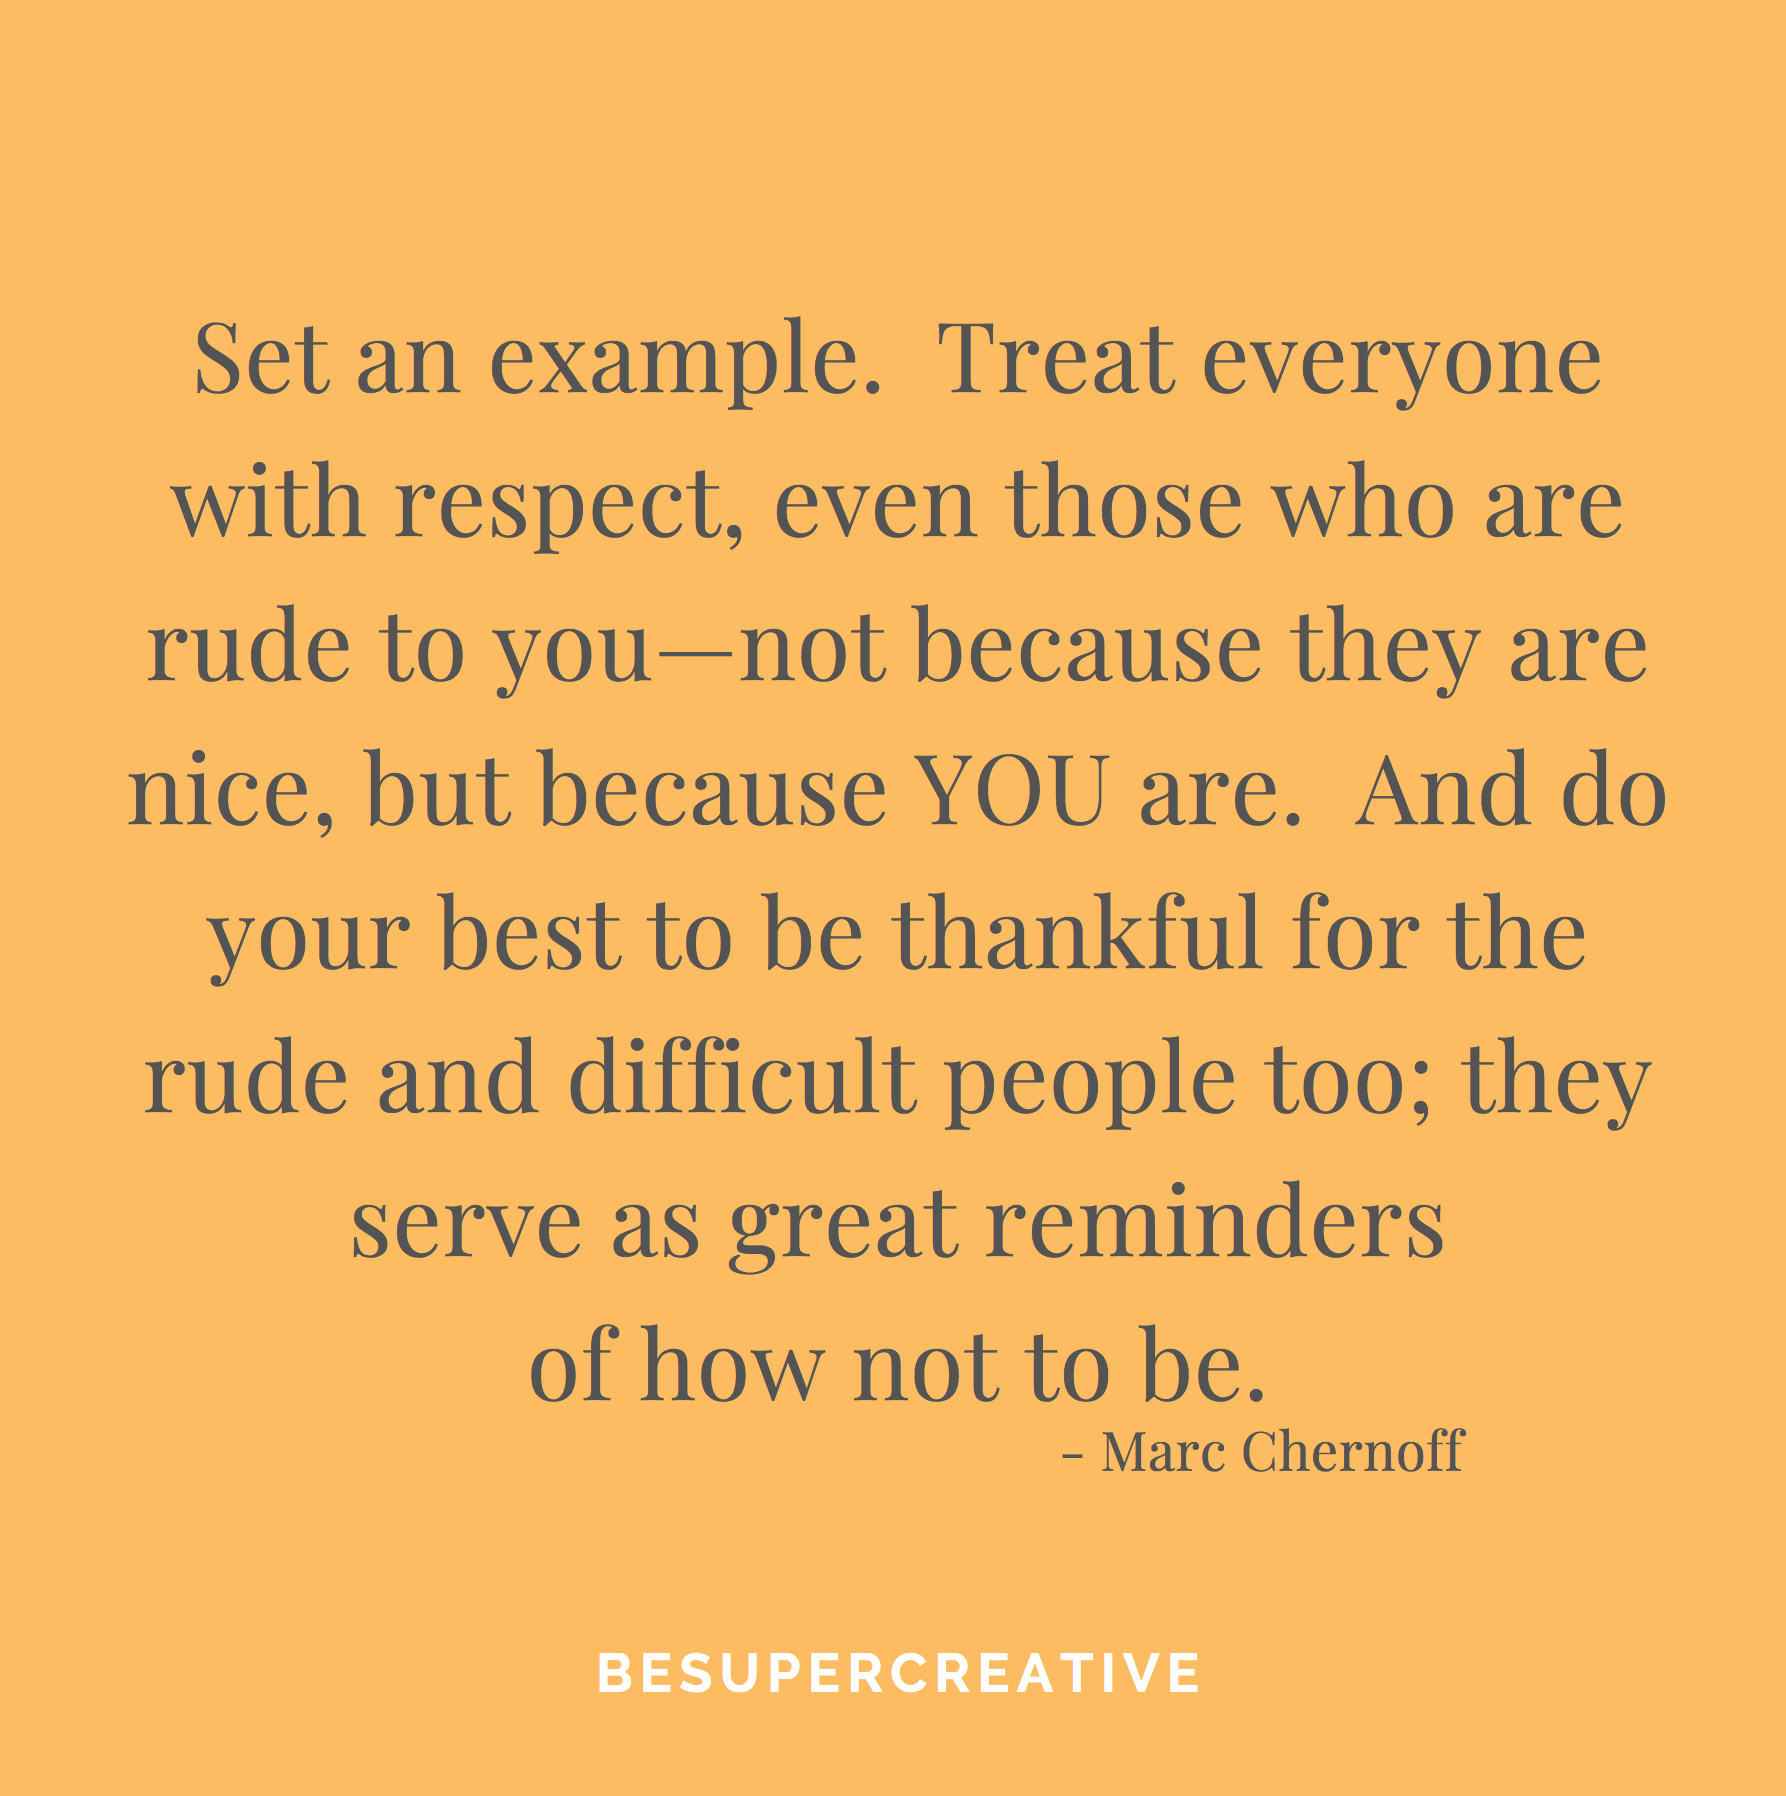 """Set an example. Treat everyone with respect, even those who are rude to you—not because they are nice, but because YOU are. And do your best to be thankful for the rude and difficult people too; they serve as great reminders of how not to be."""